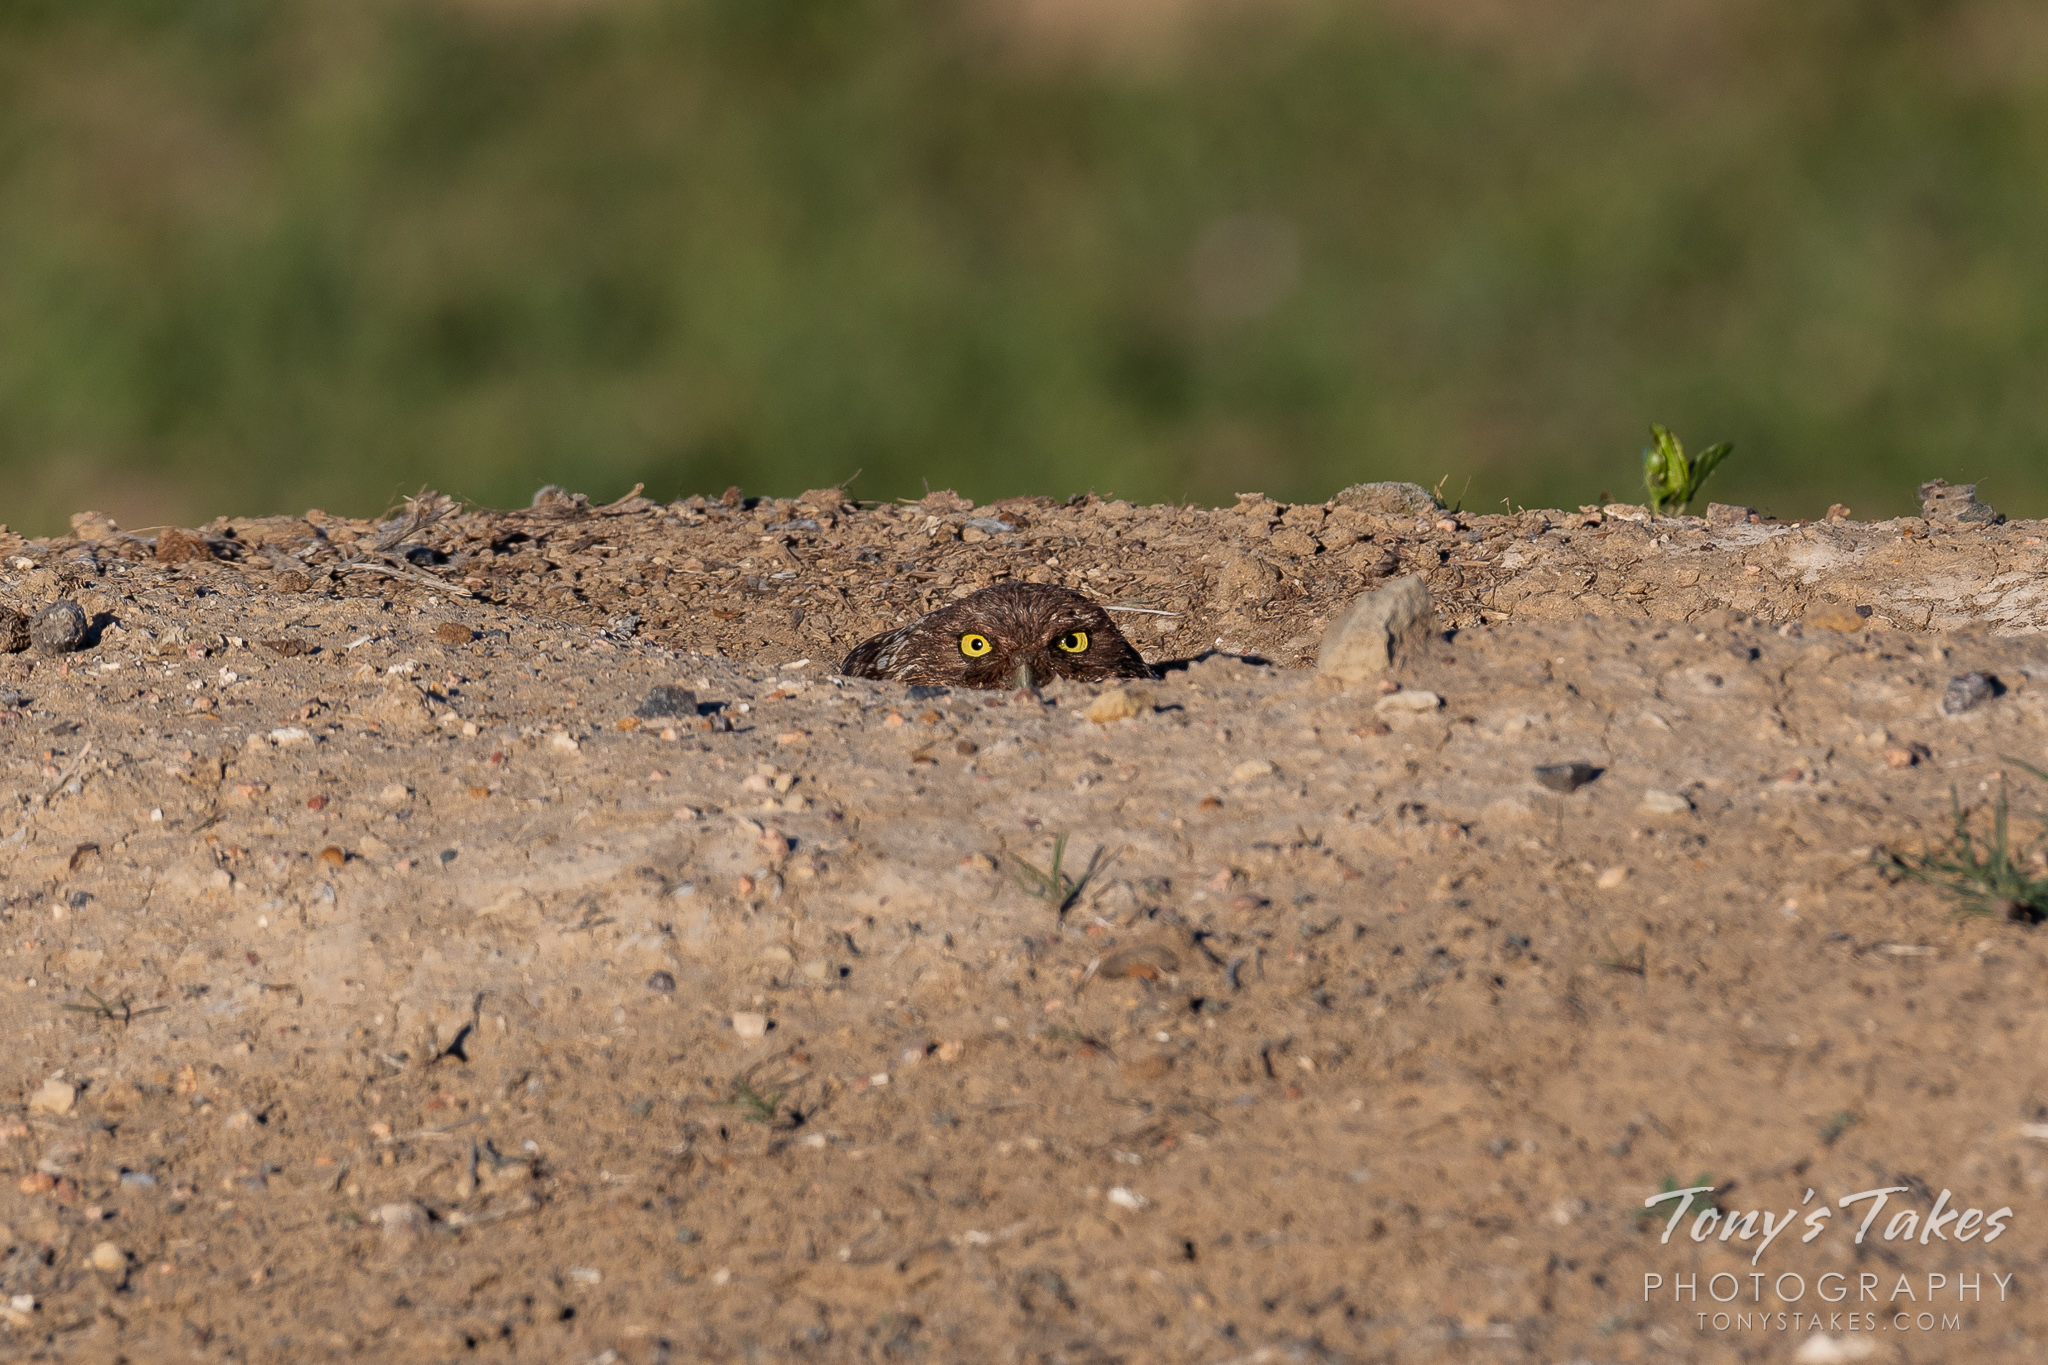 A burrowing owl stays low in its burrow but keeps a close watch. (© Tony's Takes)